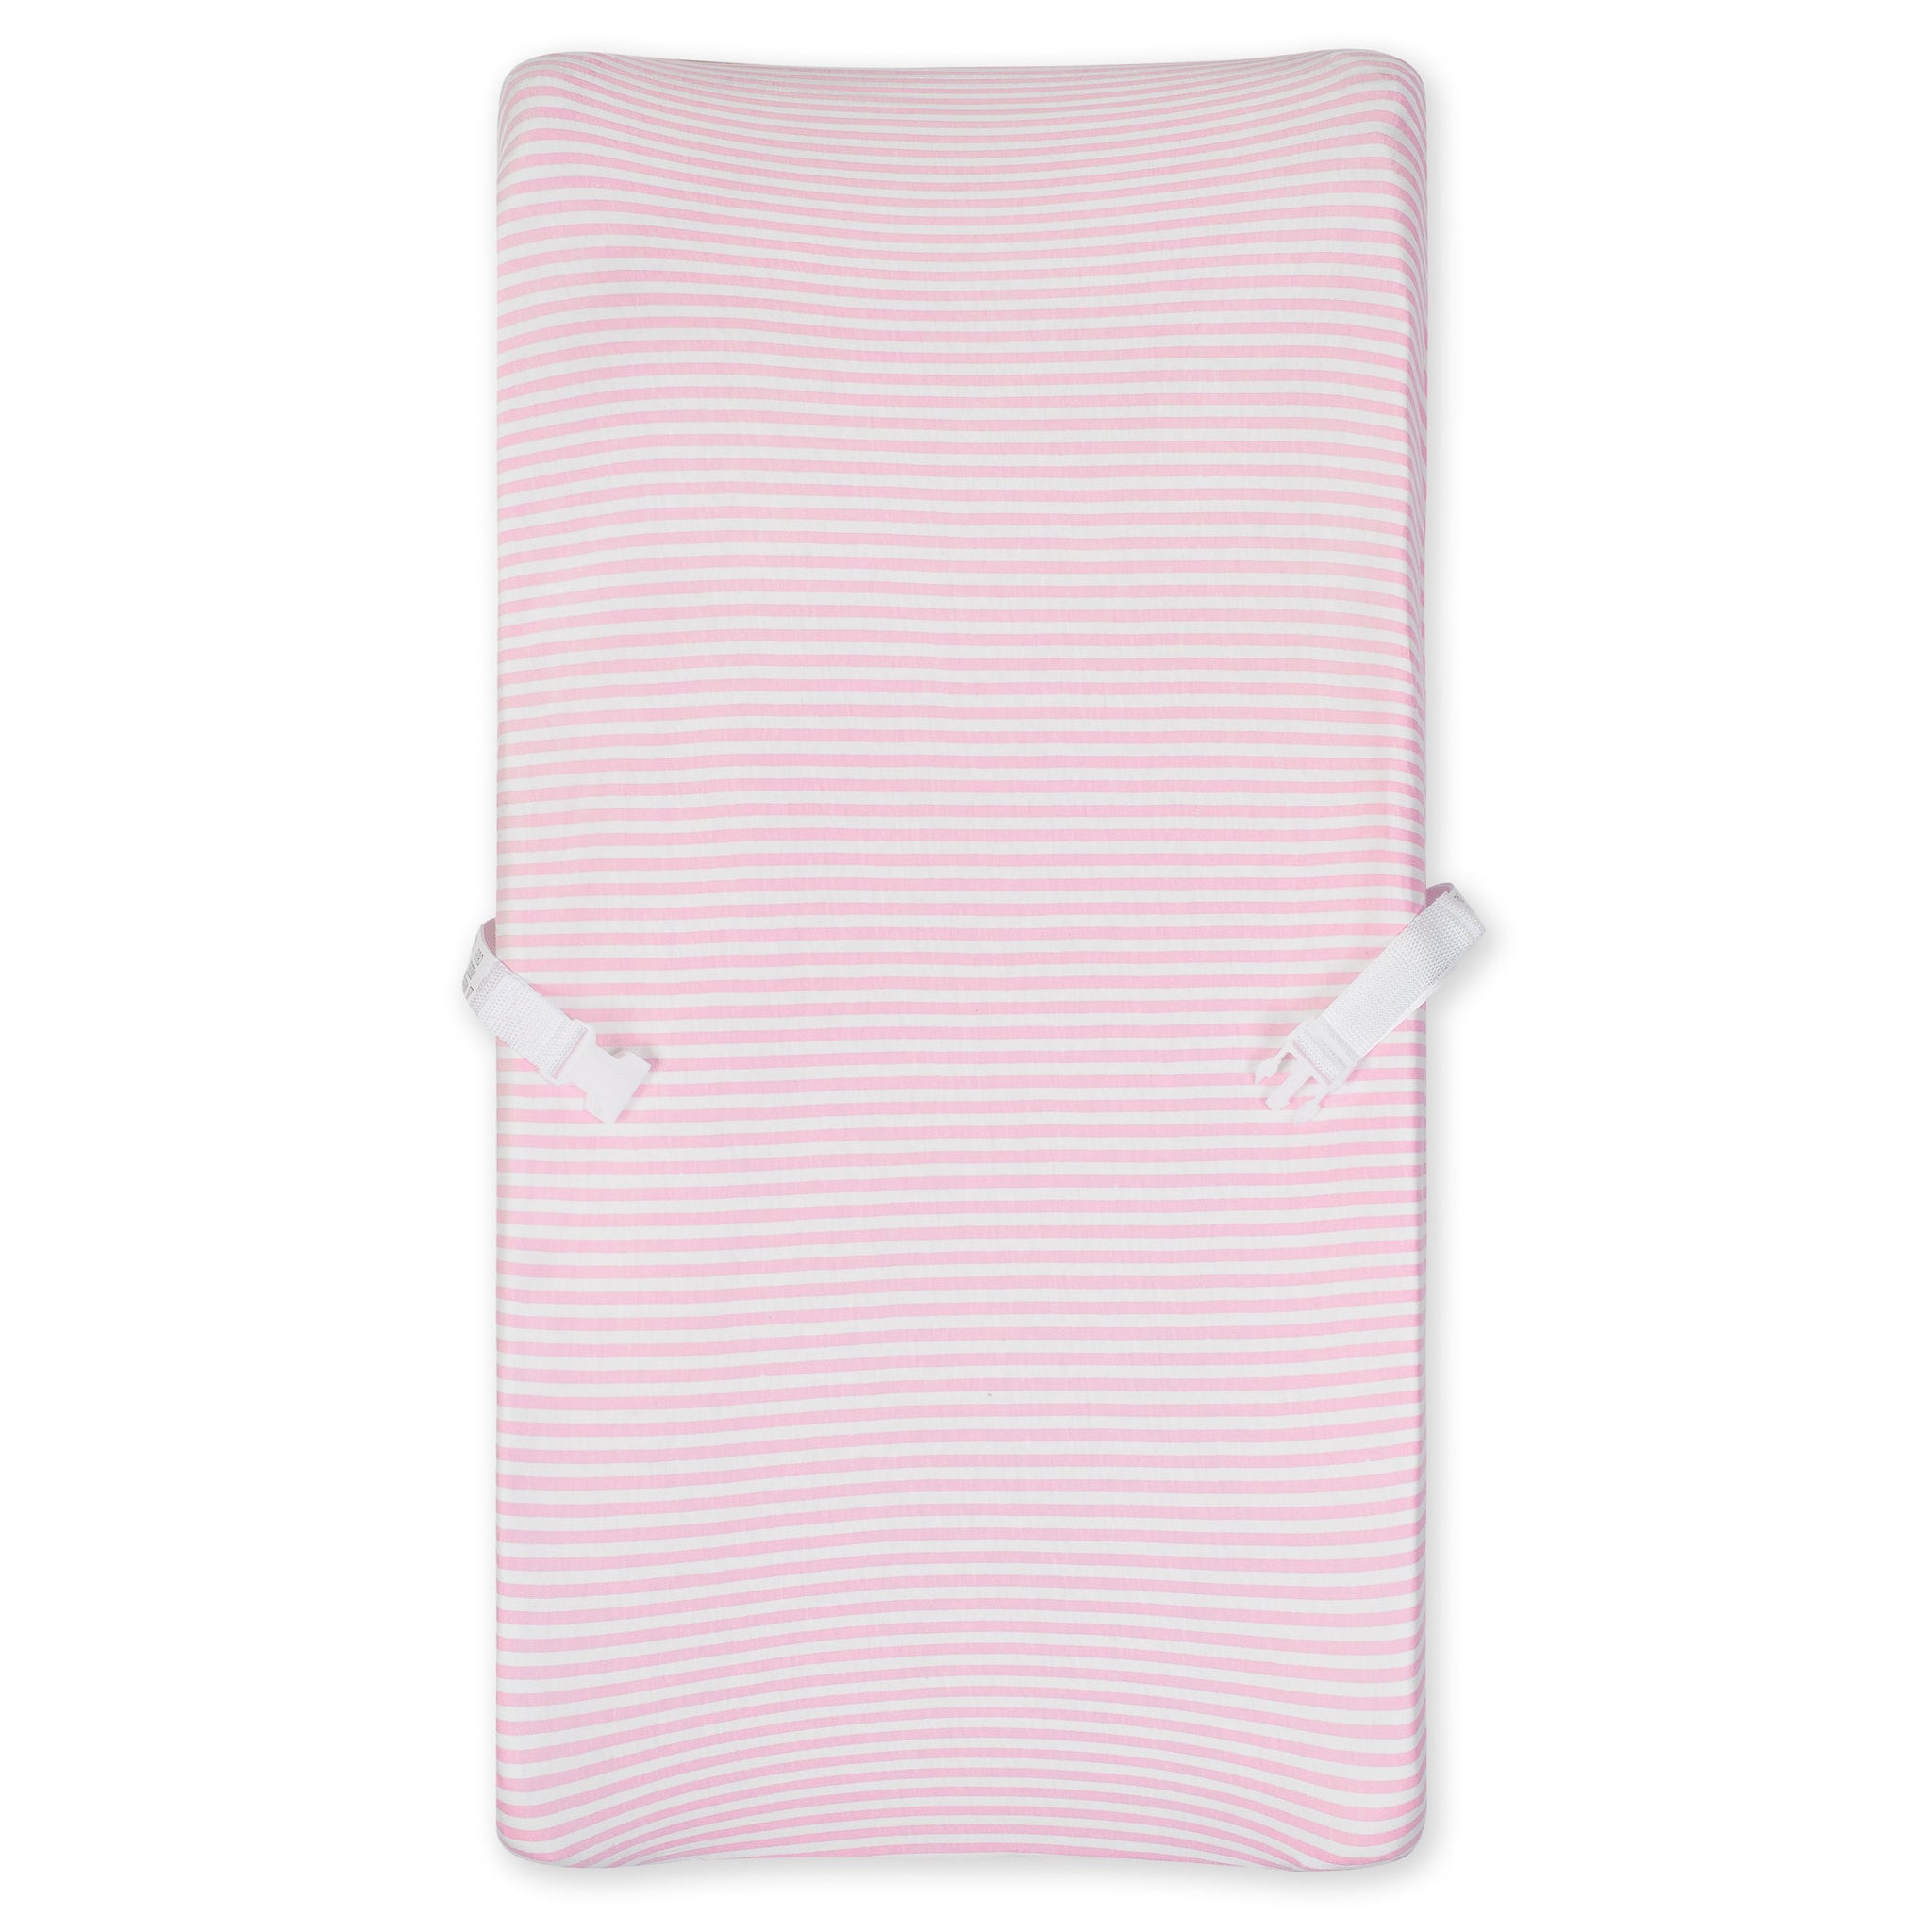 1-Pack Girls Pink Organic Changing Pad Cover-Gerber Childrenswear Wholesale